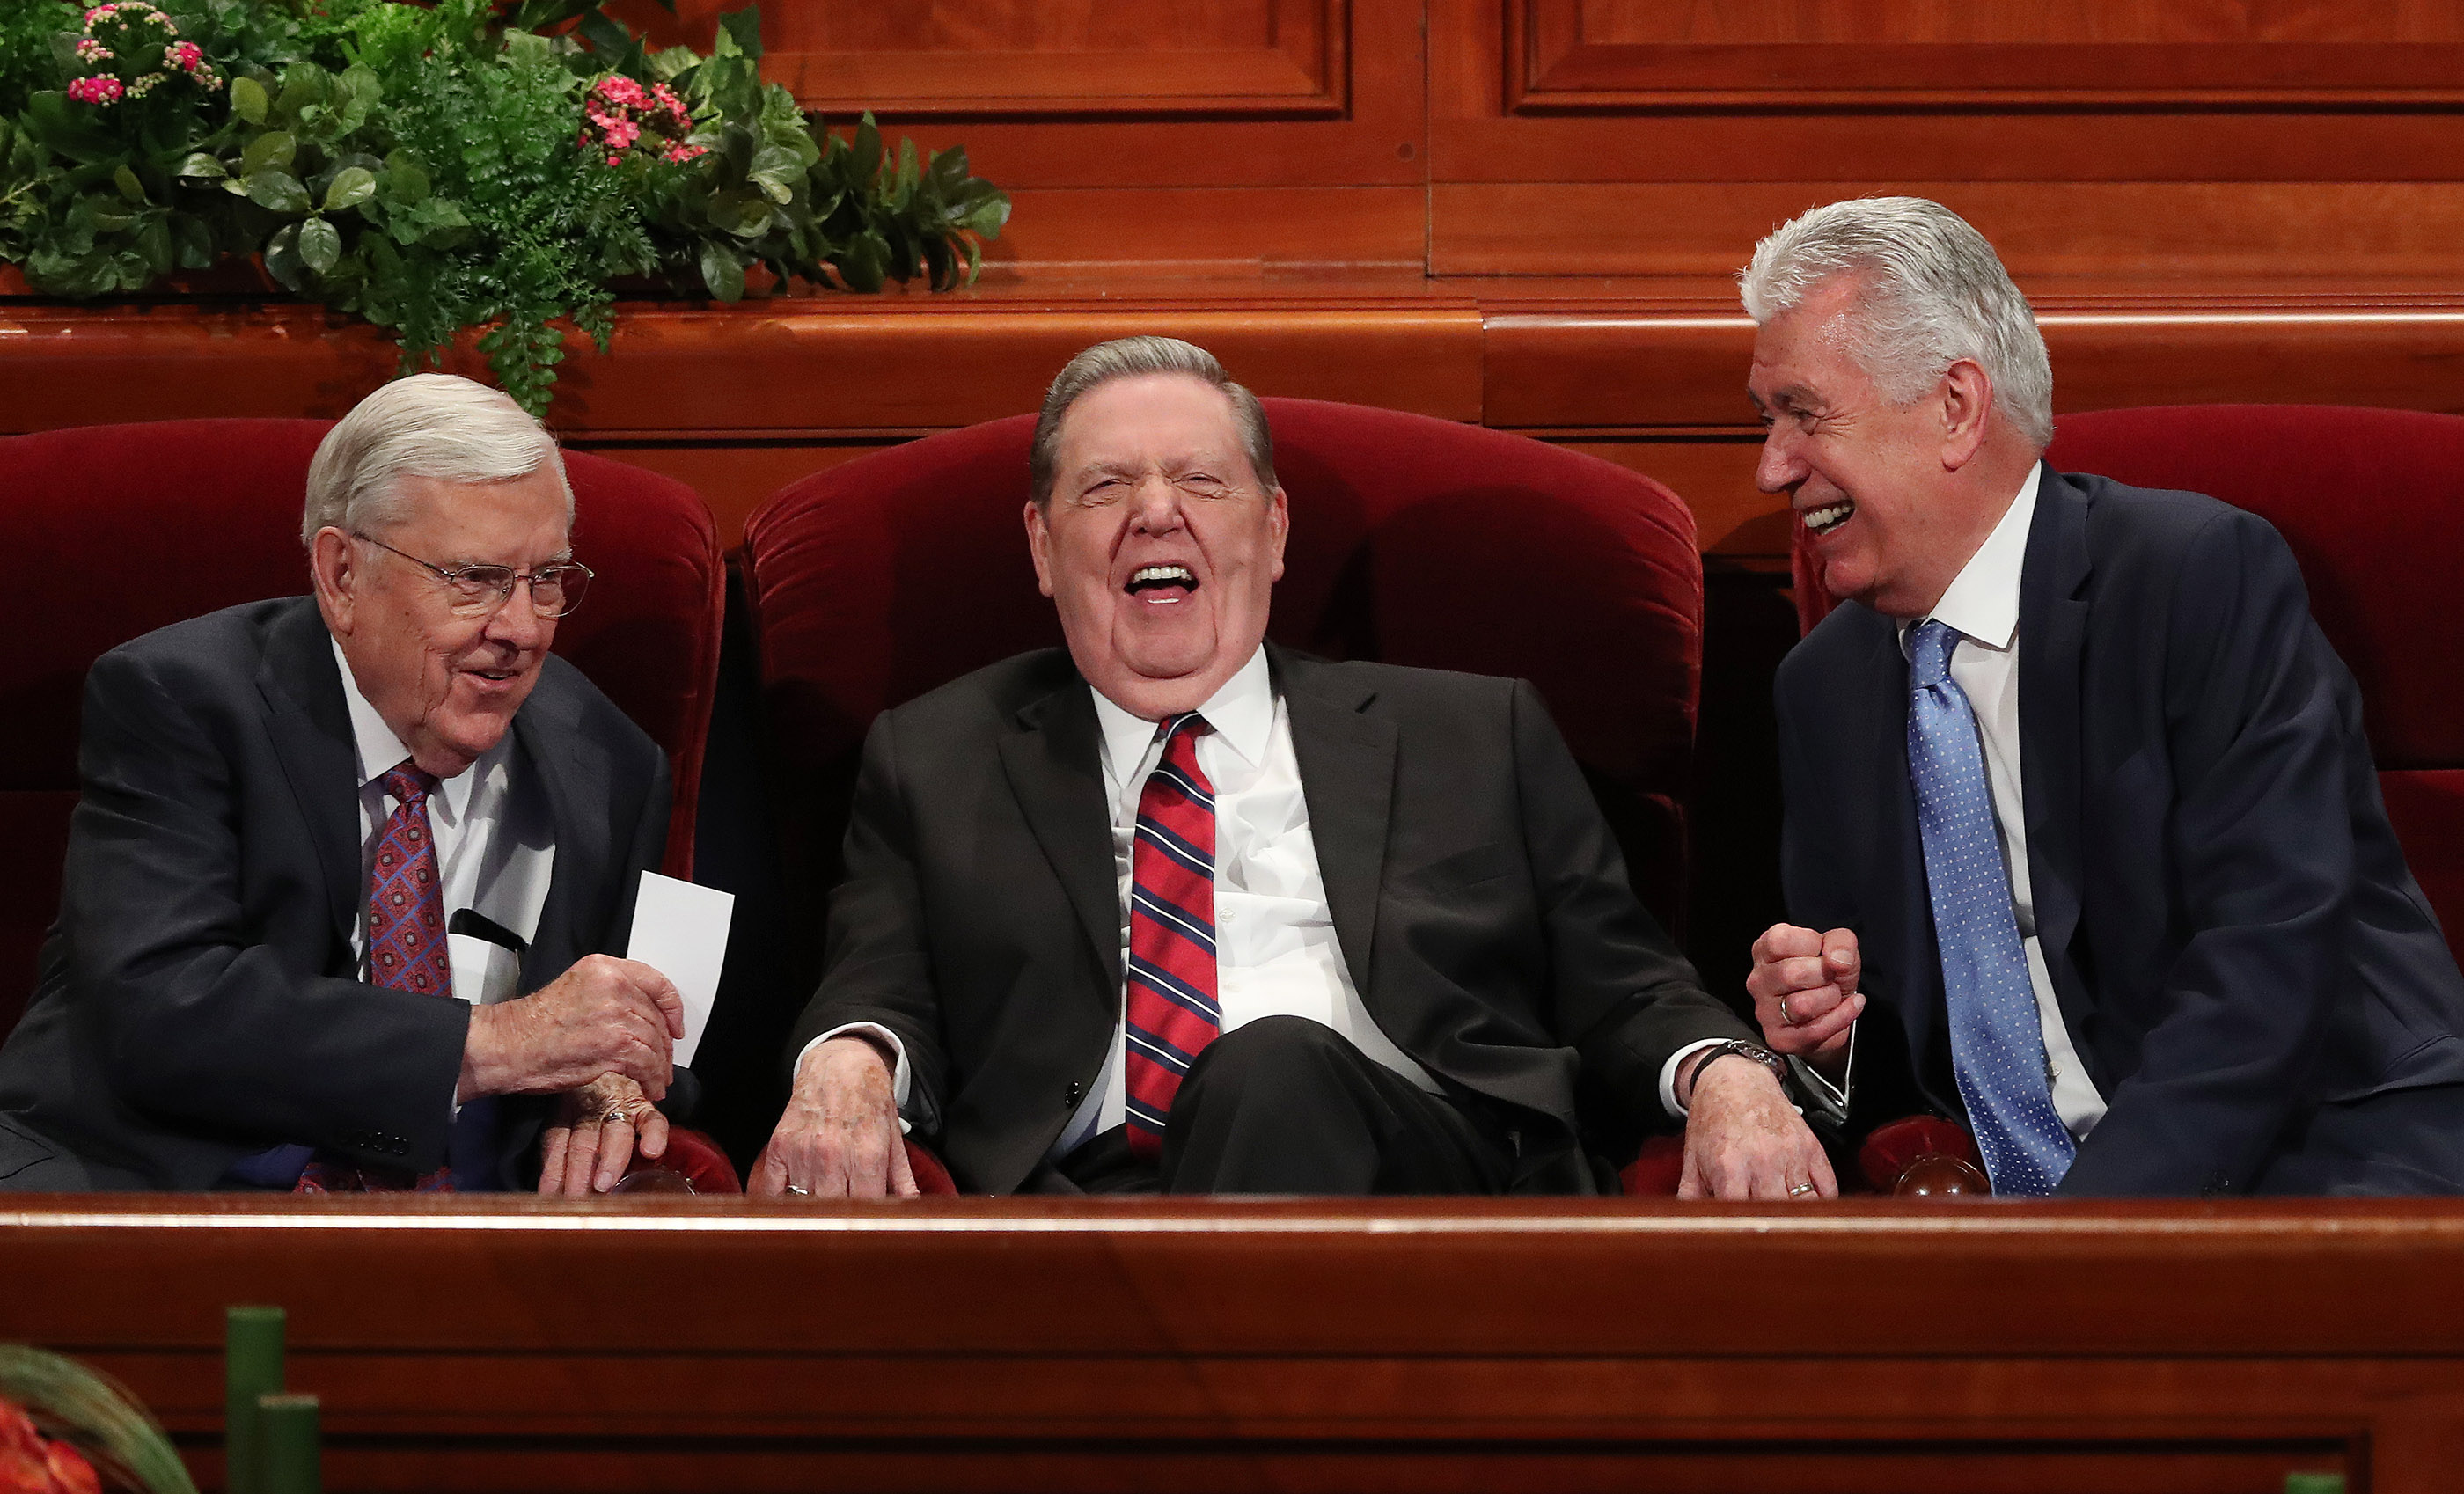 President M. Russell Ballard, acting president of the Quorum of the Twelve Apostles, left, and Elder Jeffrey R. Holland and Elder Dieter F. Uchtdorf, also of the Quorum of the Twelve Apostles, share a light moment prior to the Sunday afternoon session of the 188th Semiannual General Conference of The Church of Jesus Christ of Latter-day Saints in the Conference Center in Salt Lake City on Sunday, Oct. 7, 2018.